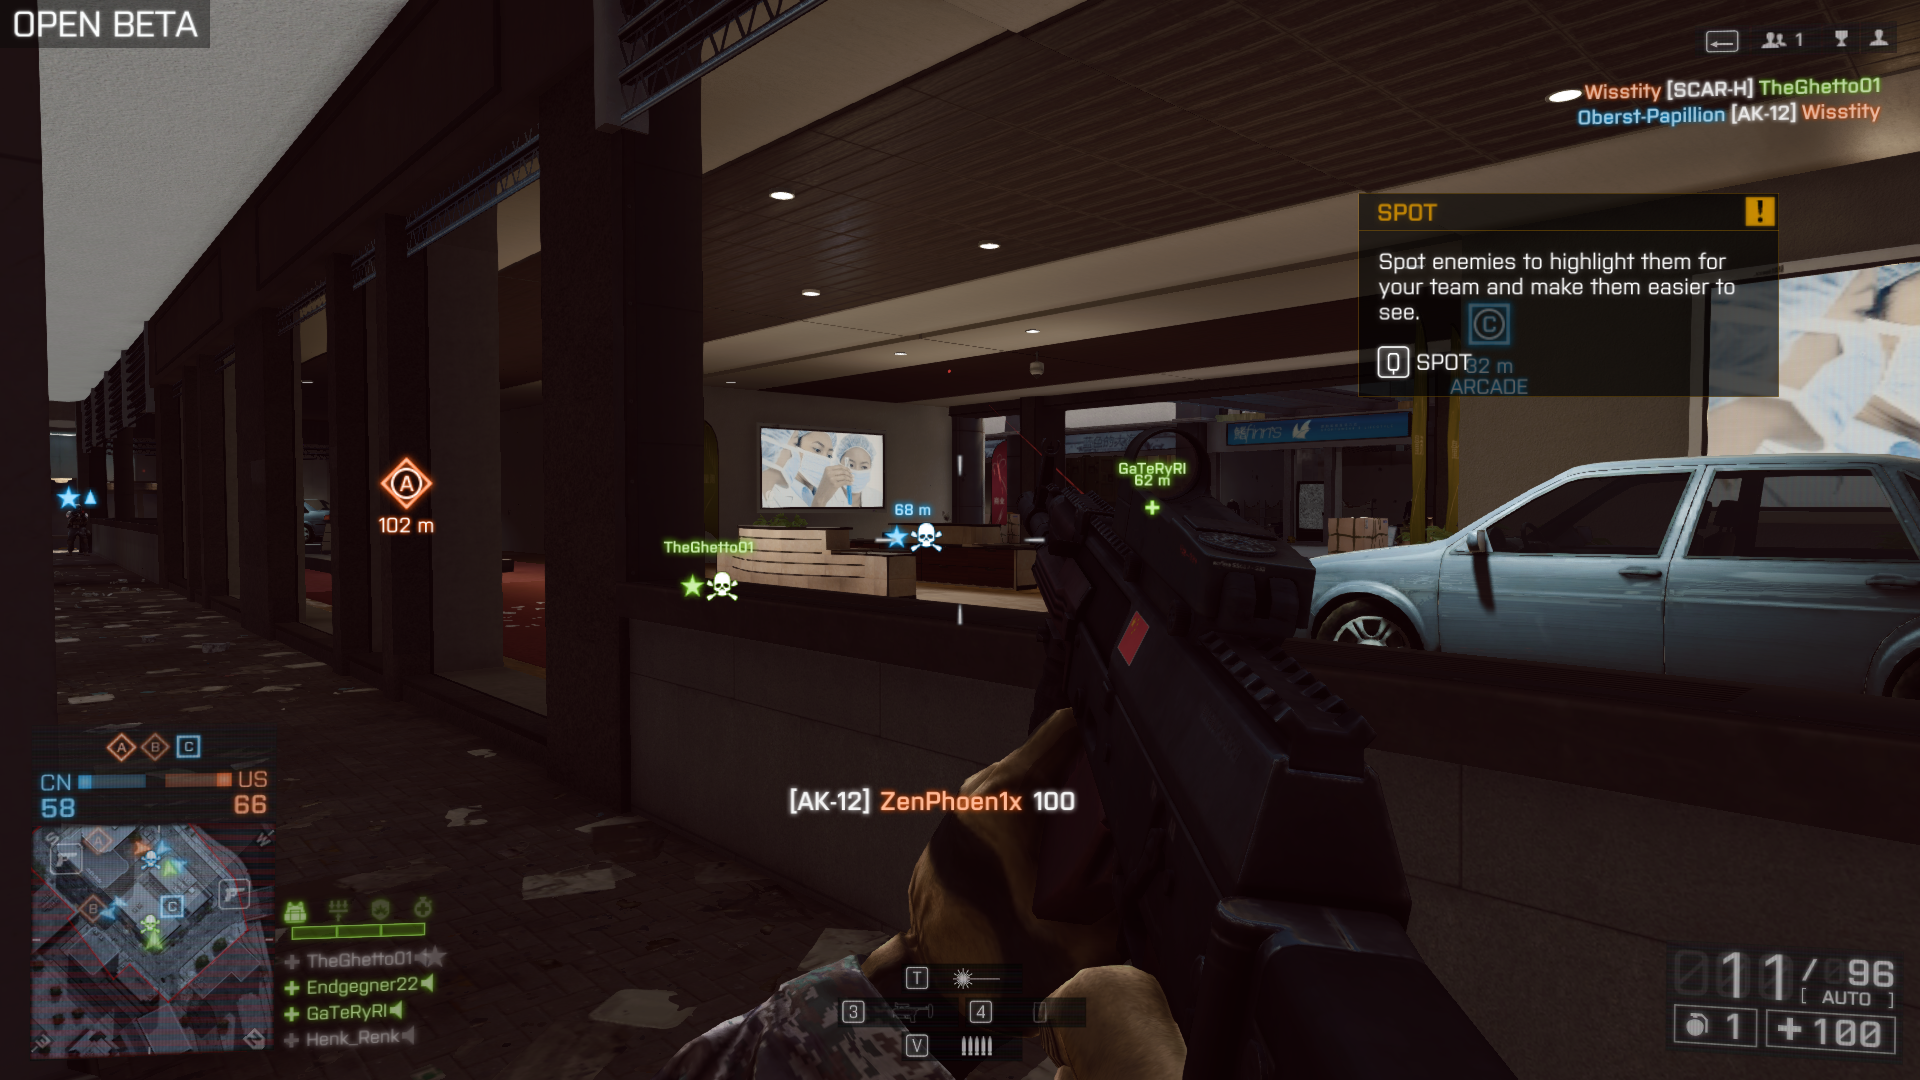 http://endgegner.fightercom.de/BF4_Screenshot/Battlefield4OpenBeta01.png